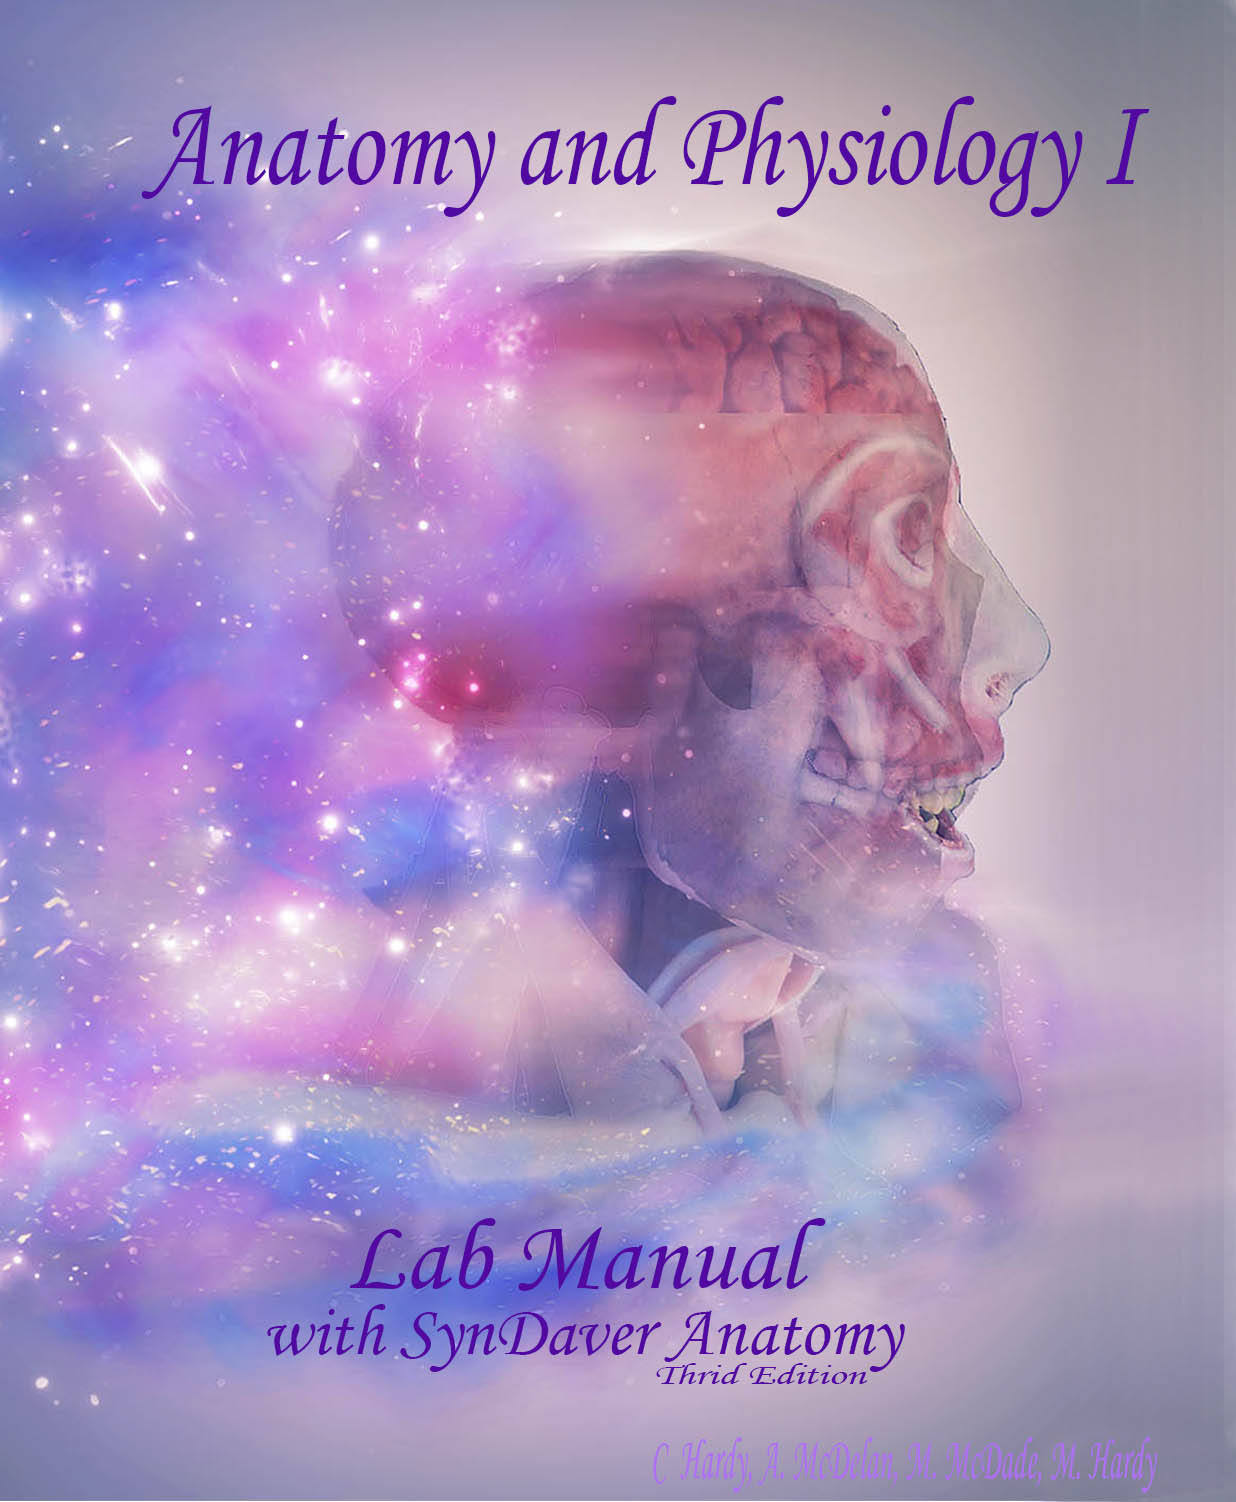 Anatomy and Physiology Lab Manual with SynDaver Anatomy, 3rd edition ...